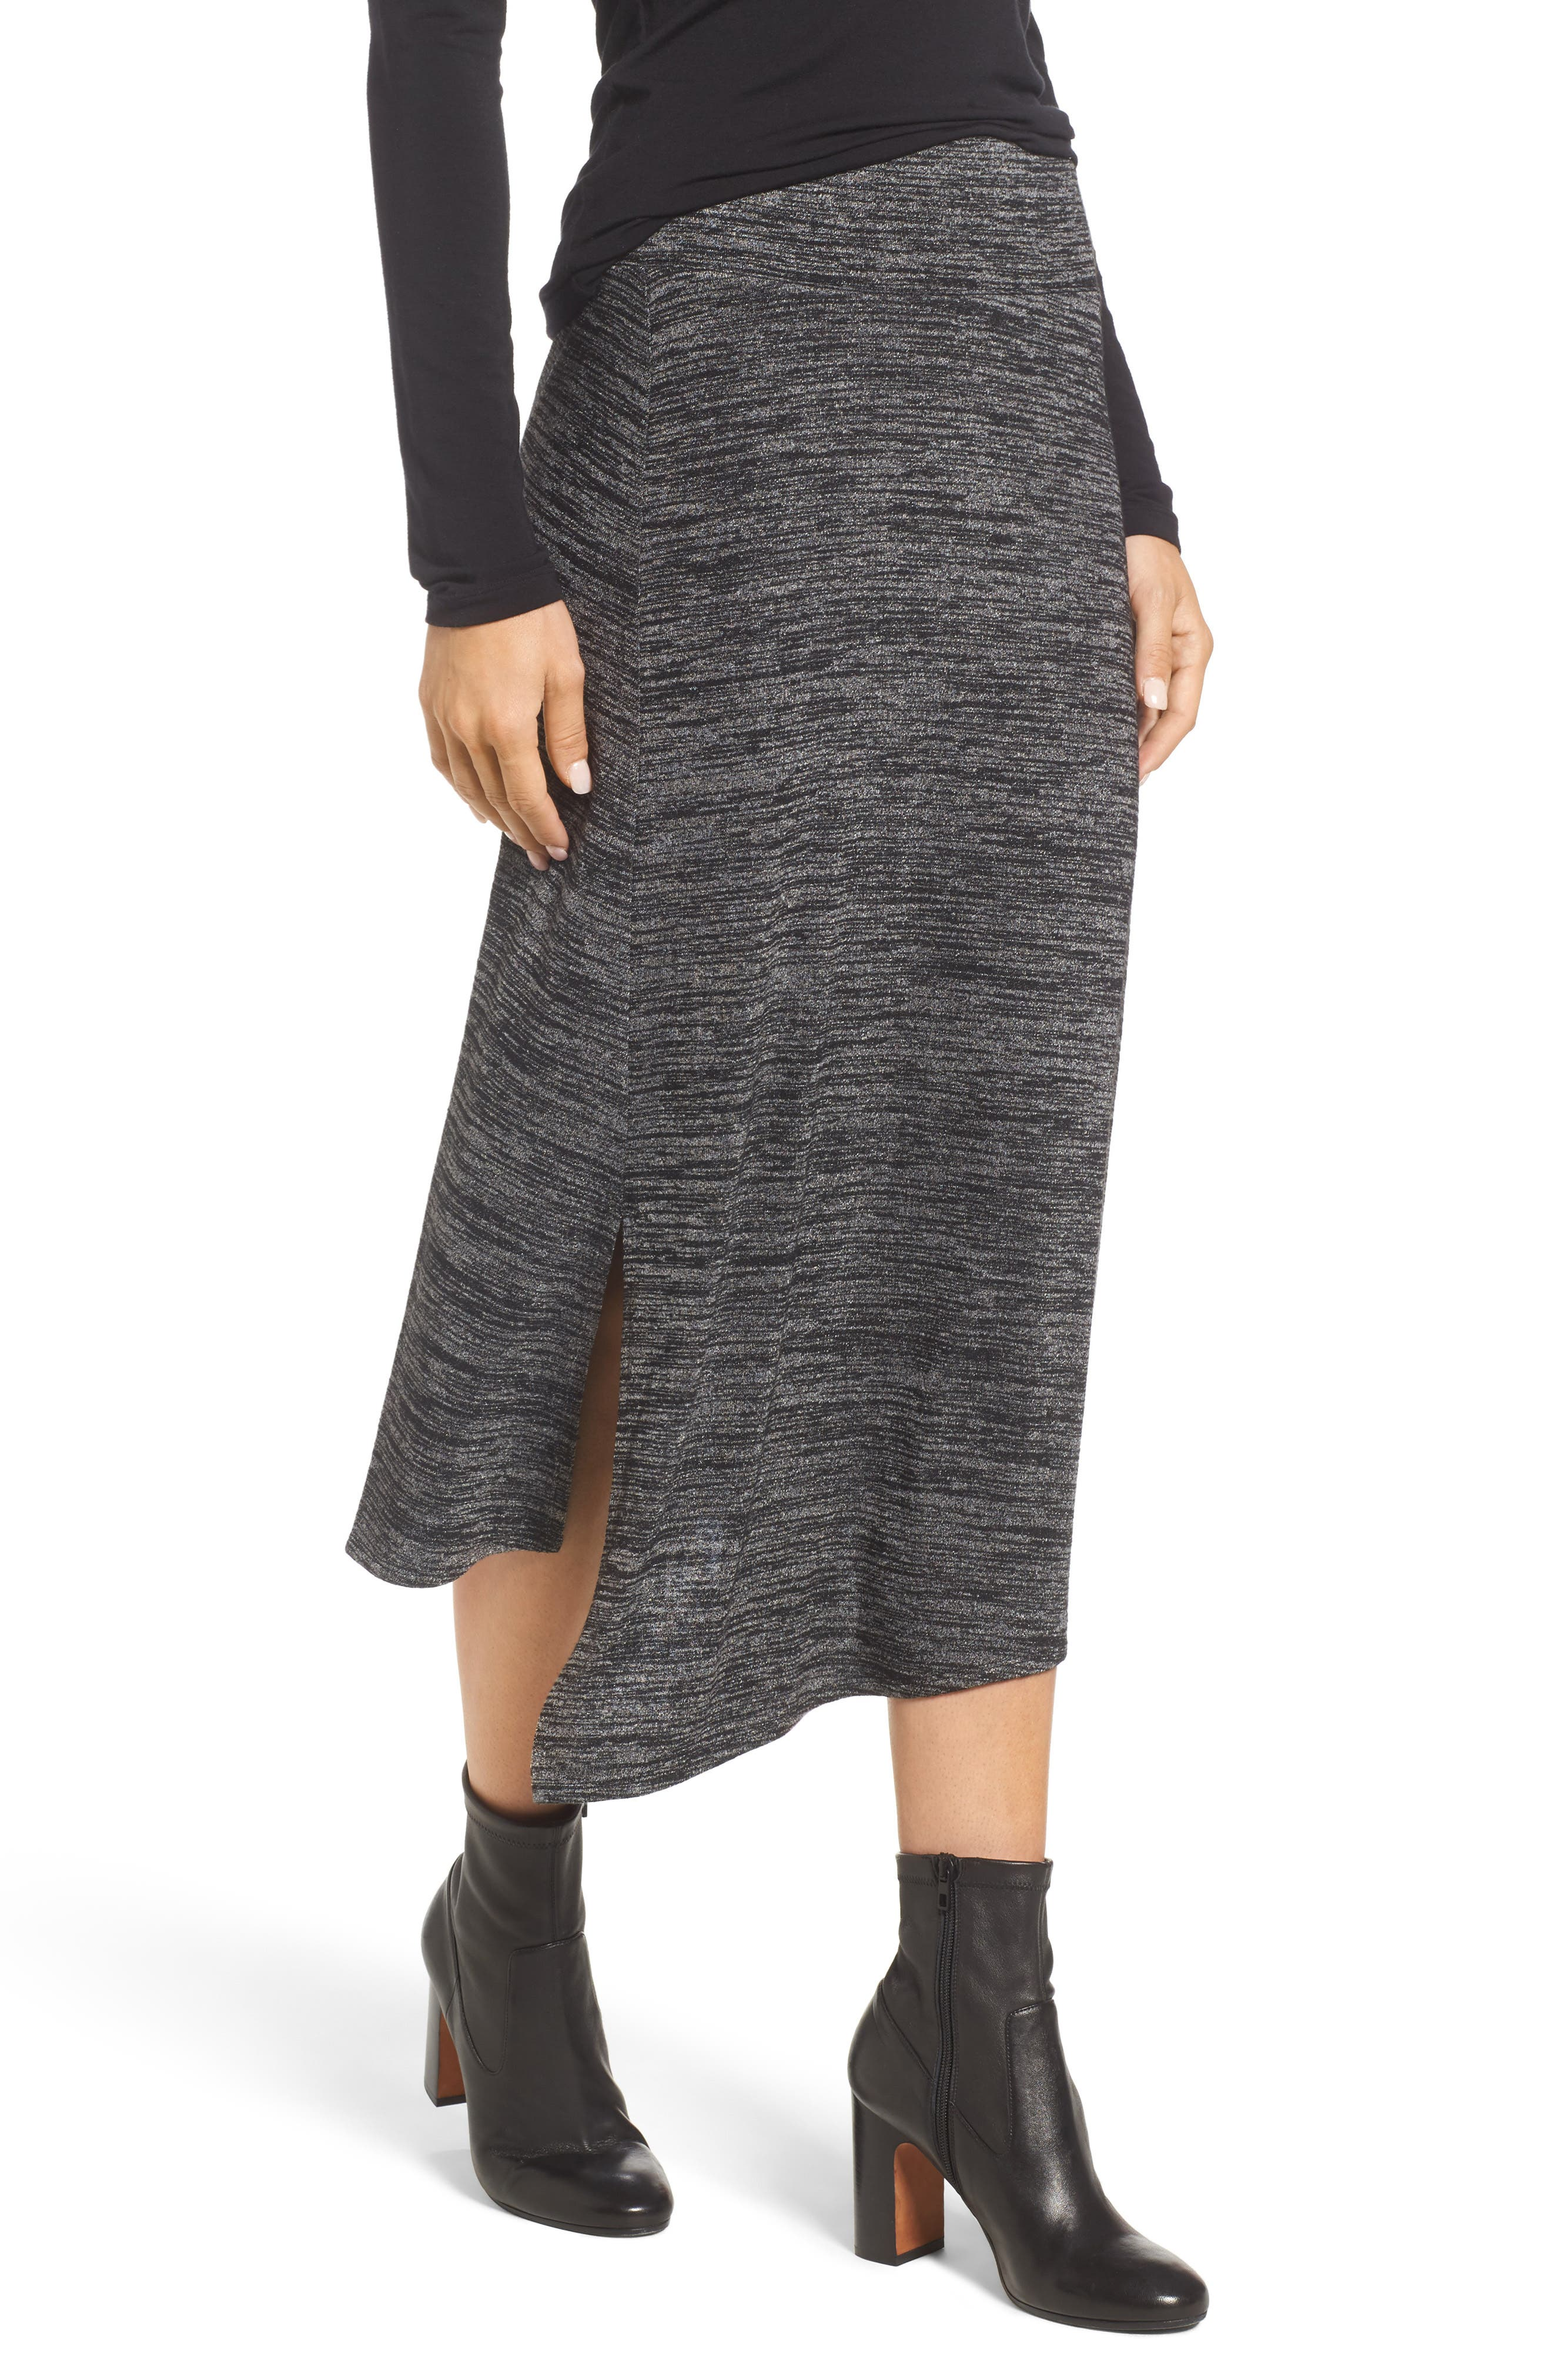 Nic + Zoe Every Occasion Faux Wrap Skirt